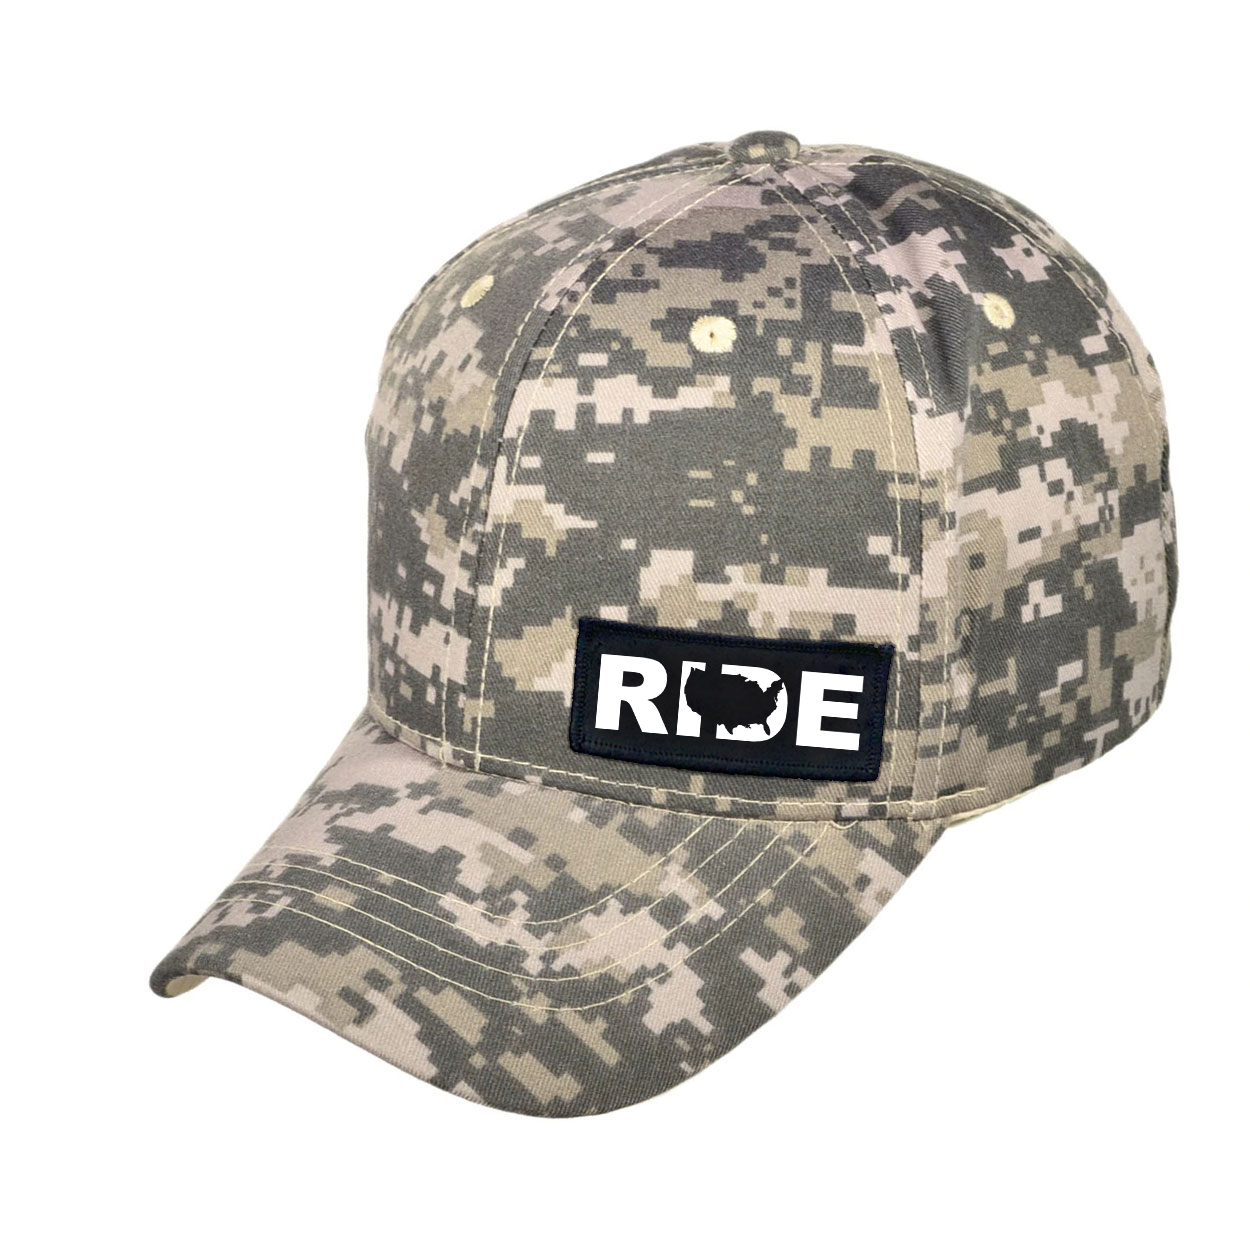 Ride United States Night Out Woven Patch Hat Digital Camo (White Logo)